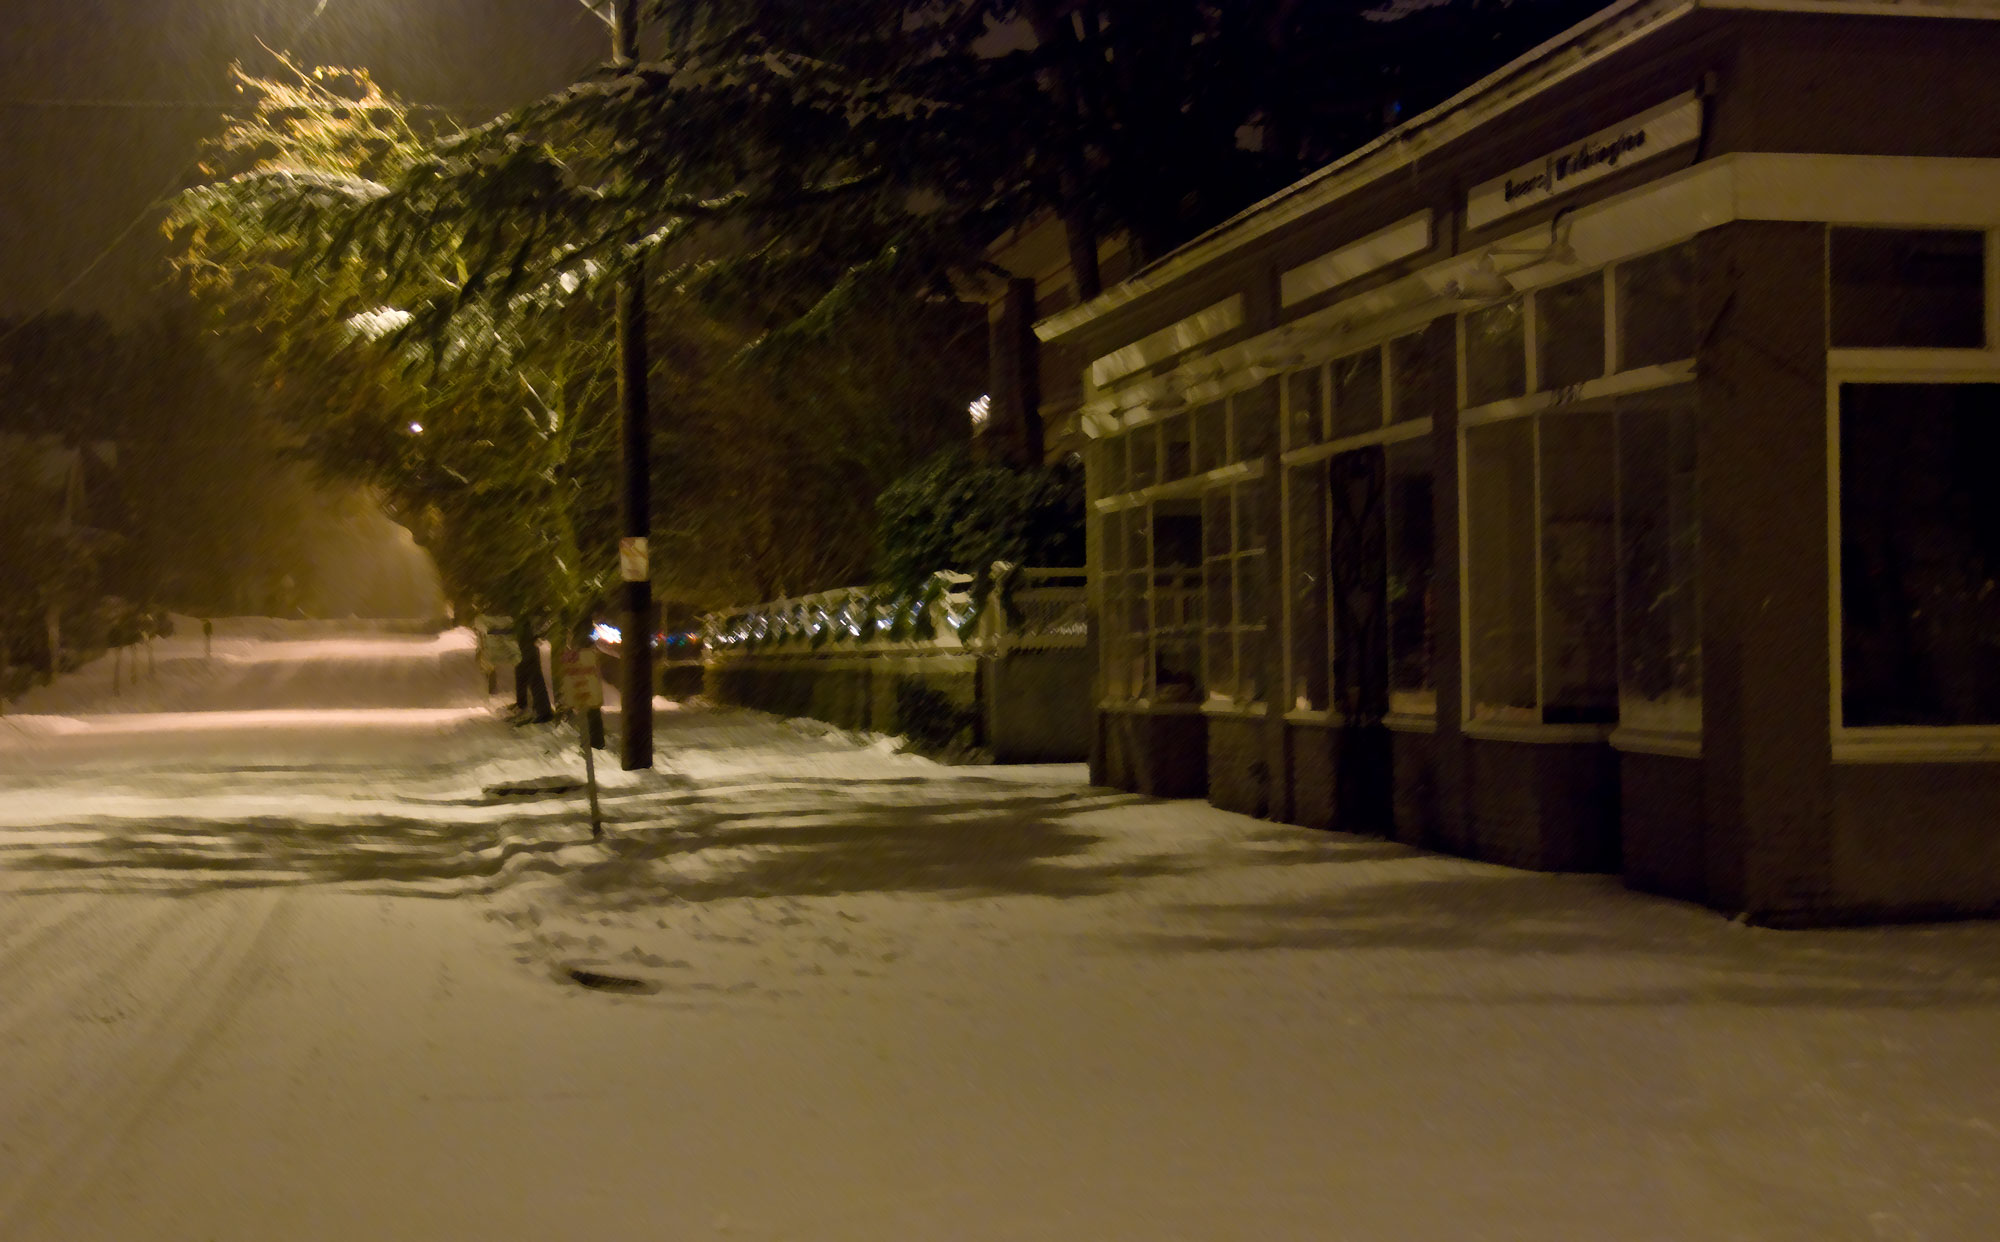 Storefronts, snowy night